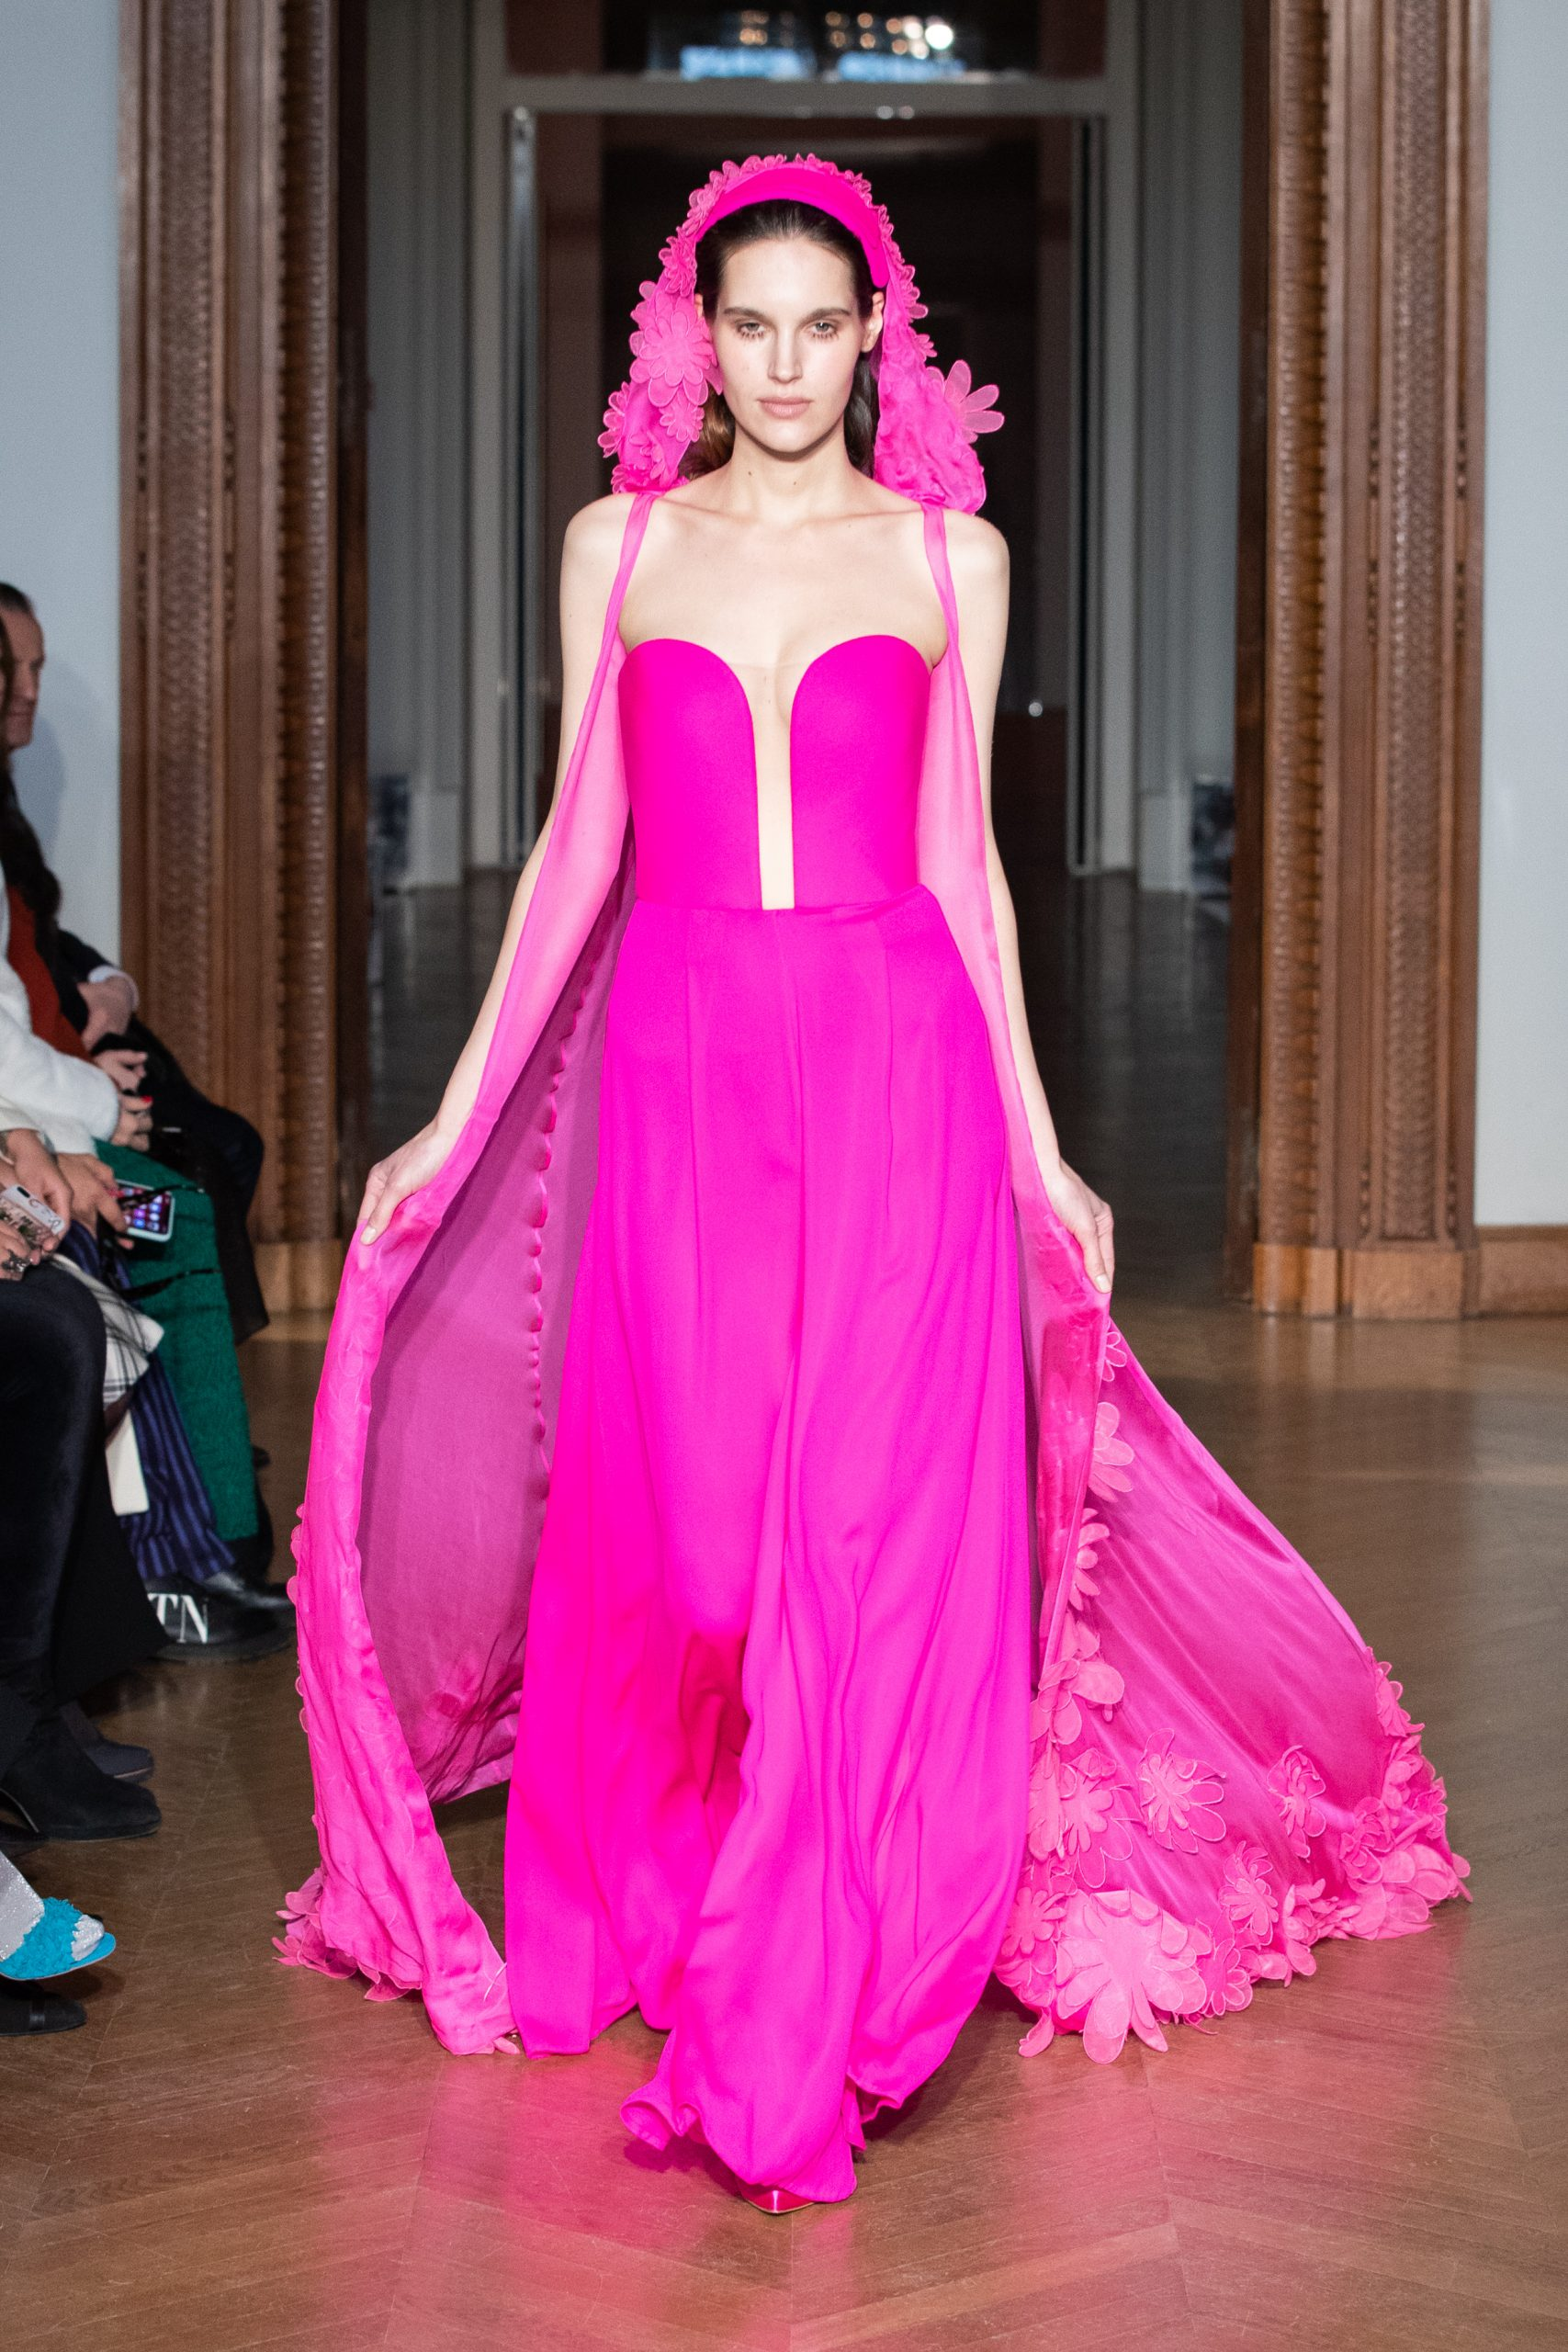 Yanina Spring Summer 2020 Couture Show